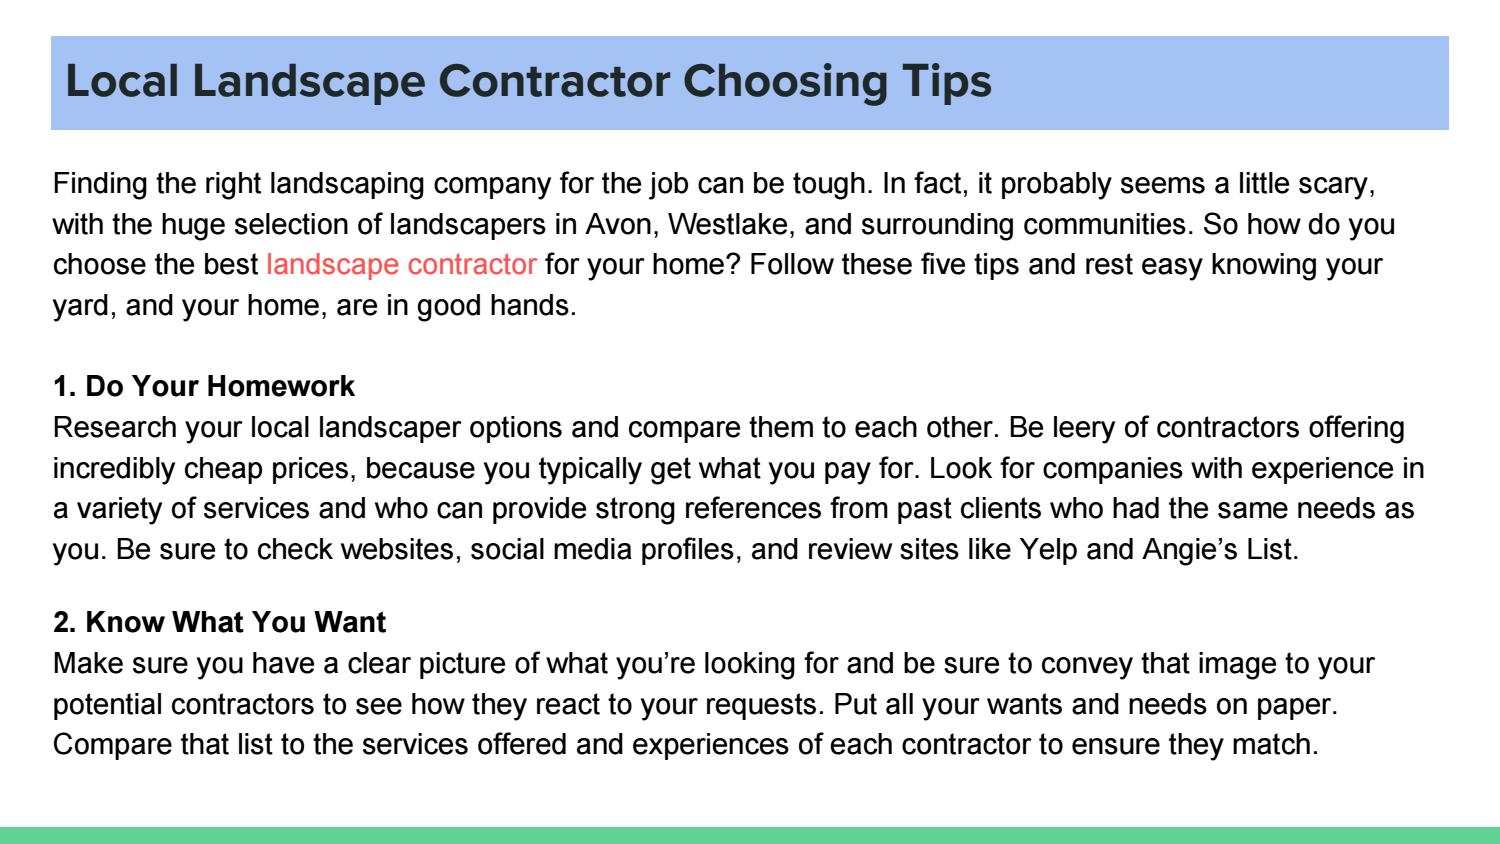 5 Tips For Choosing The Right Landscape Contractor By Barry Allen Issuu